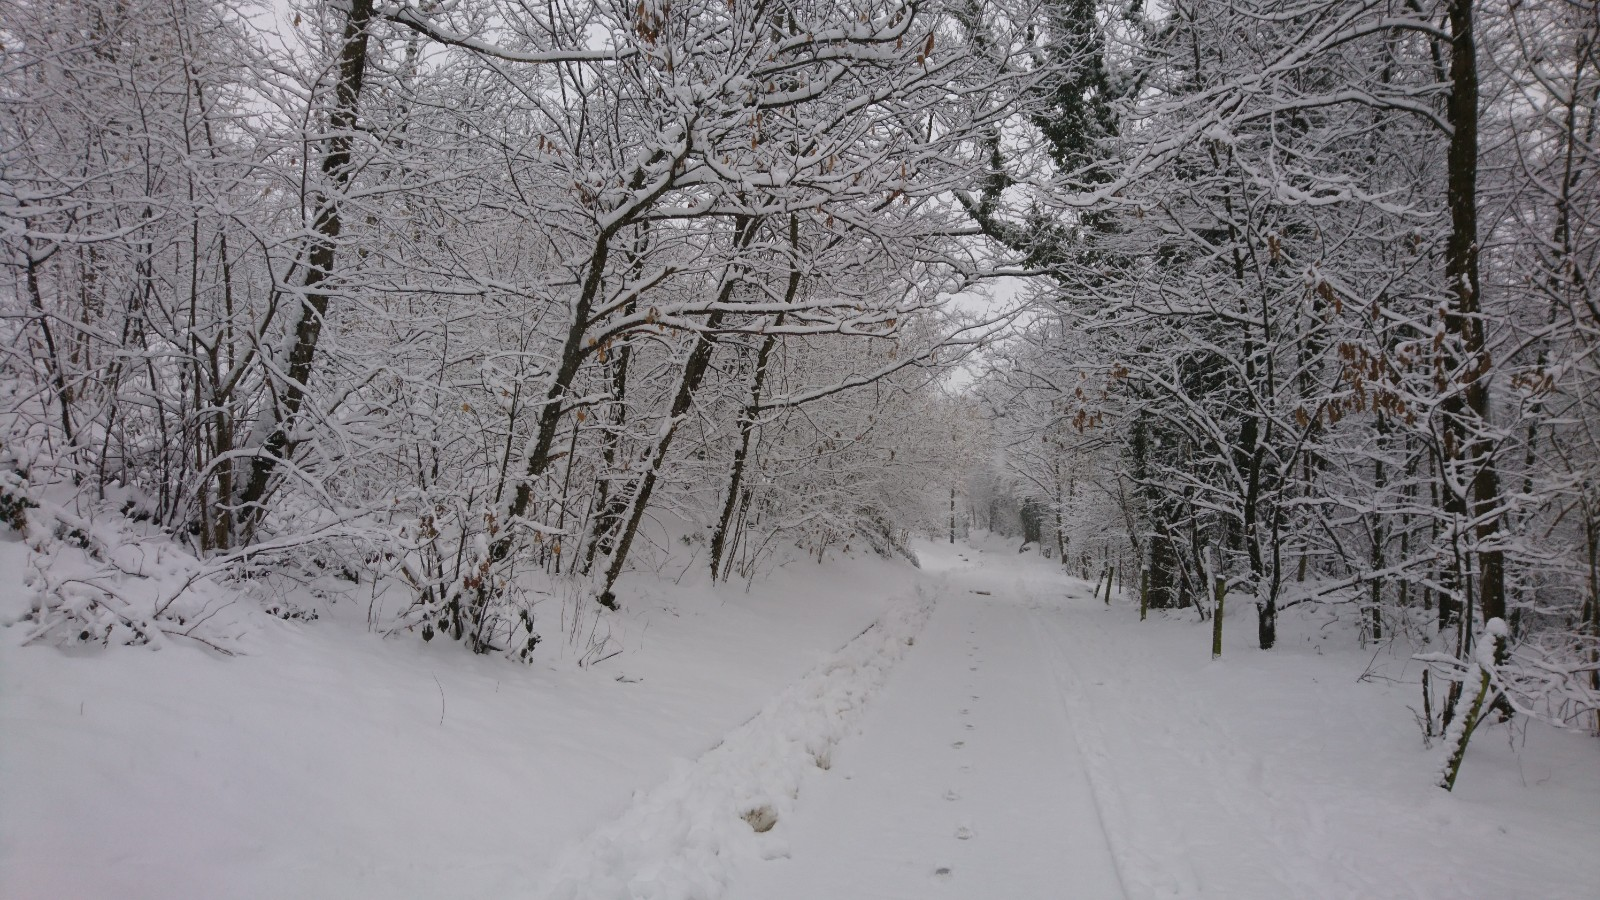 A street into the woods, everything covered with snow.